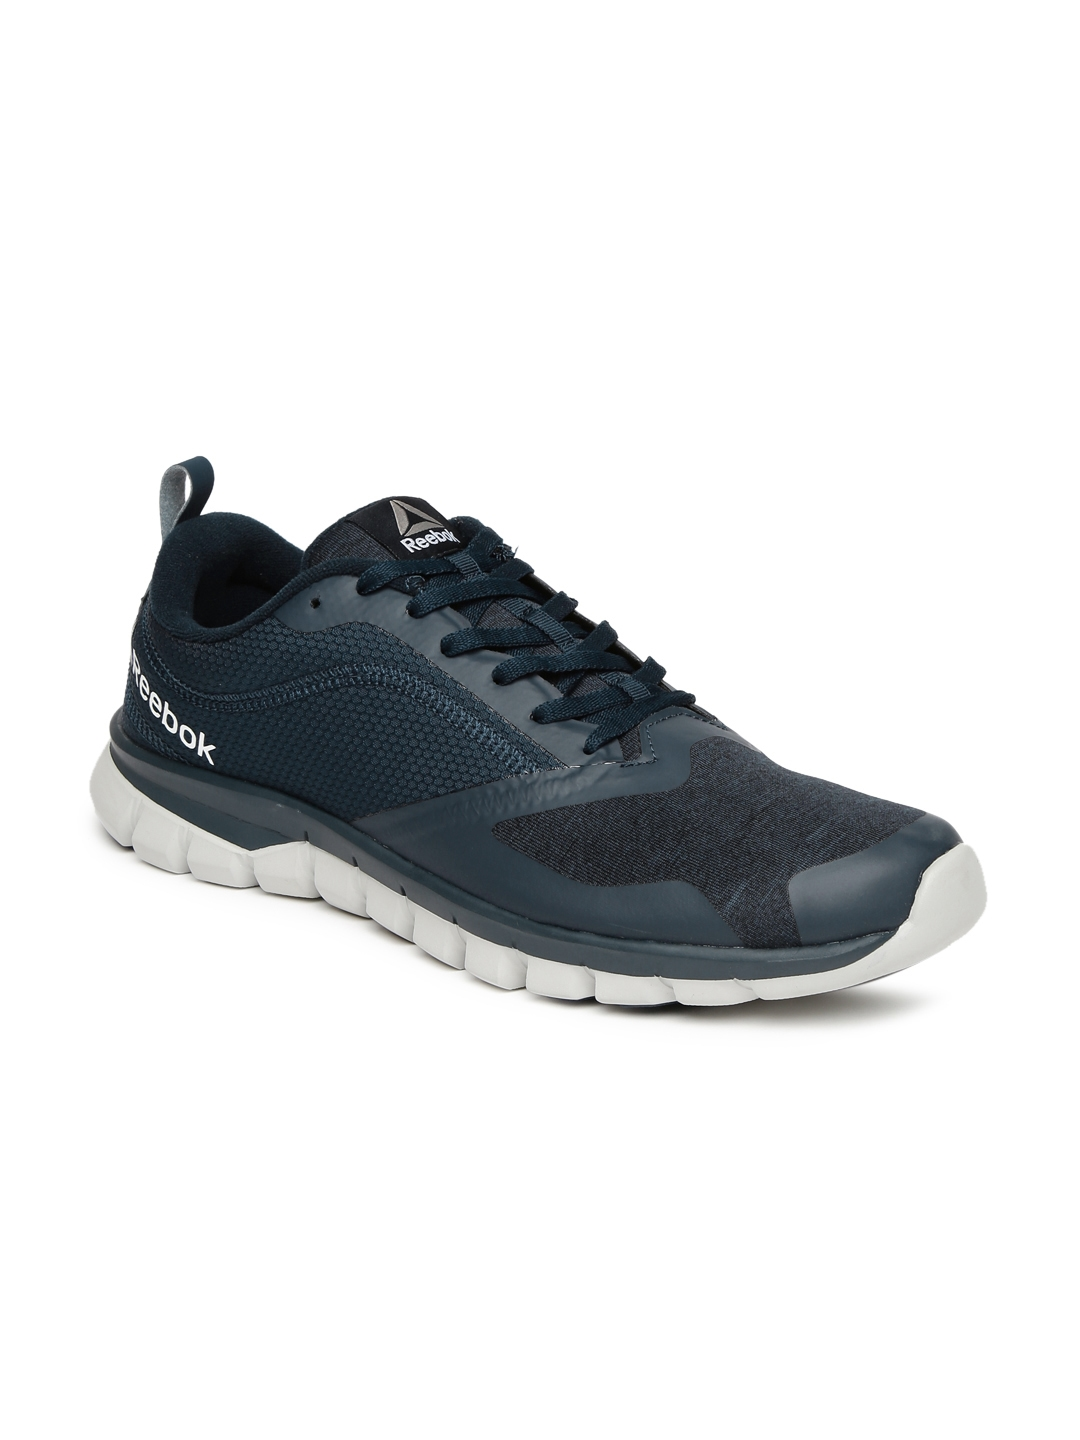 3e8c3a4b8ea5 Buy Reebok Men Navy Sublite Authentic 4.0 Running Shoes - Sports ...